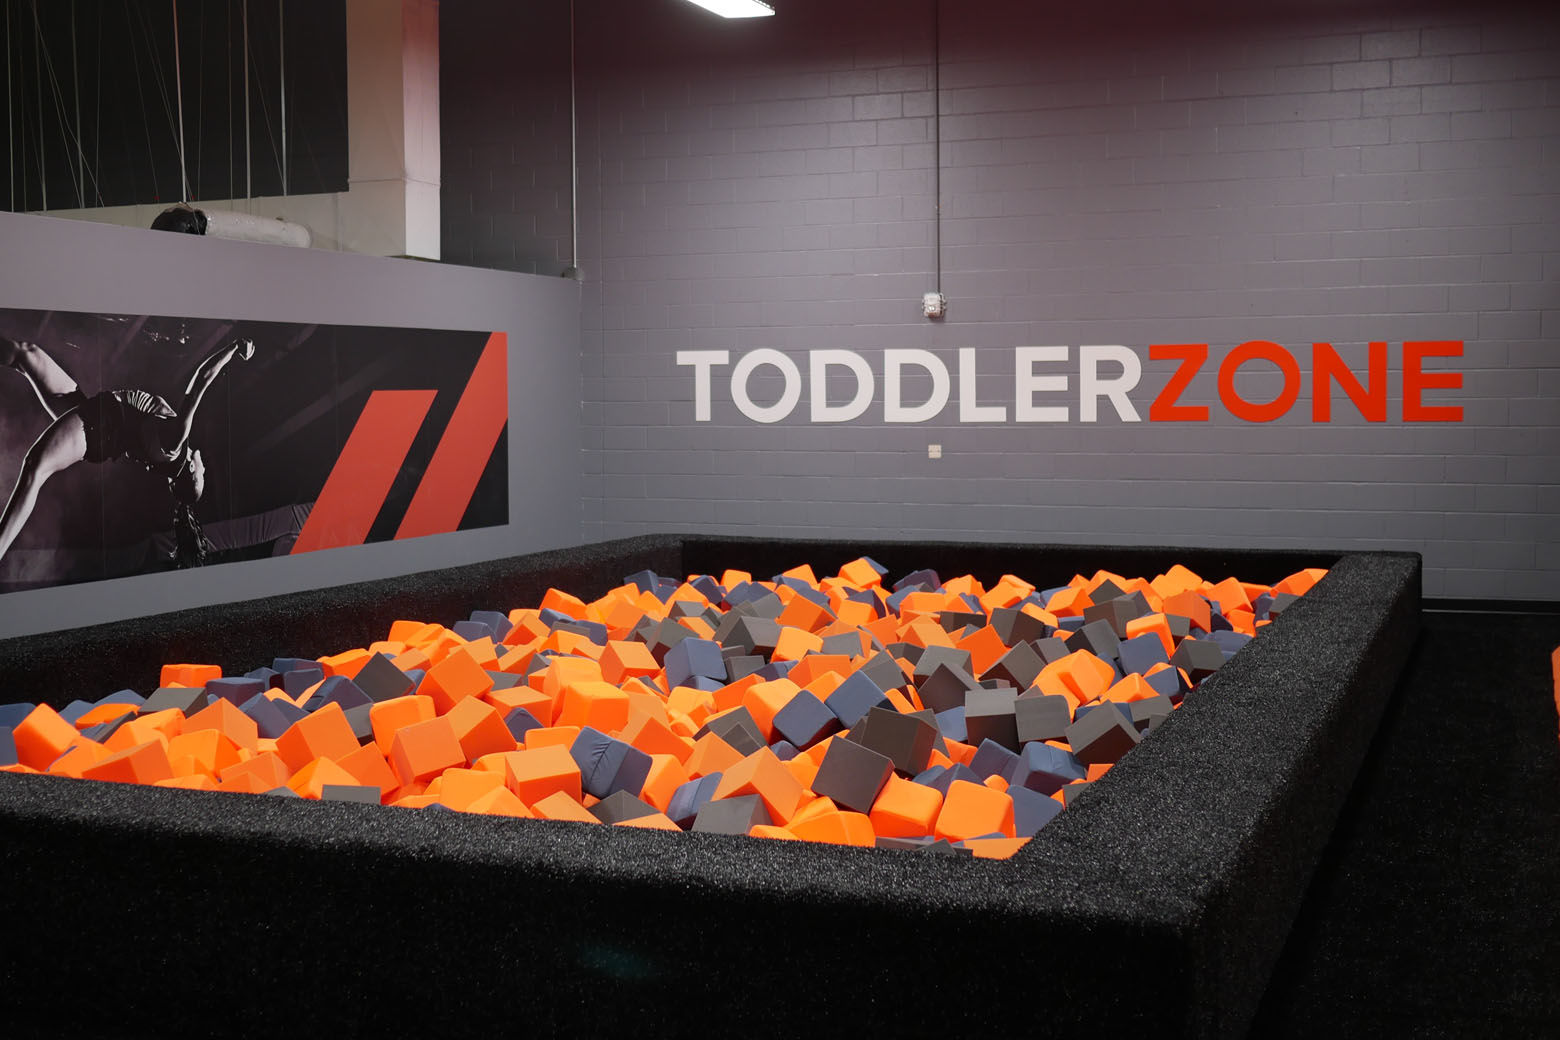 A space for the little ones at Sky Zone. (Courtesy Sky Zone)